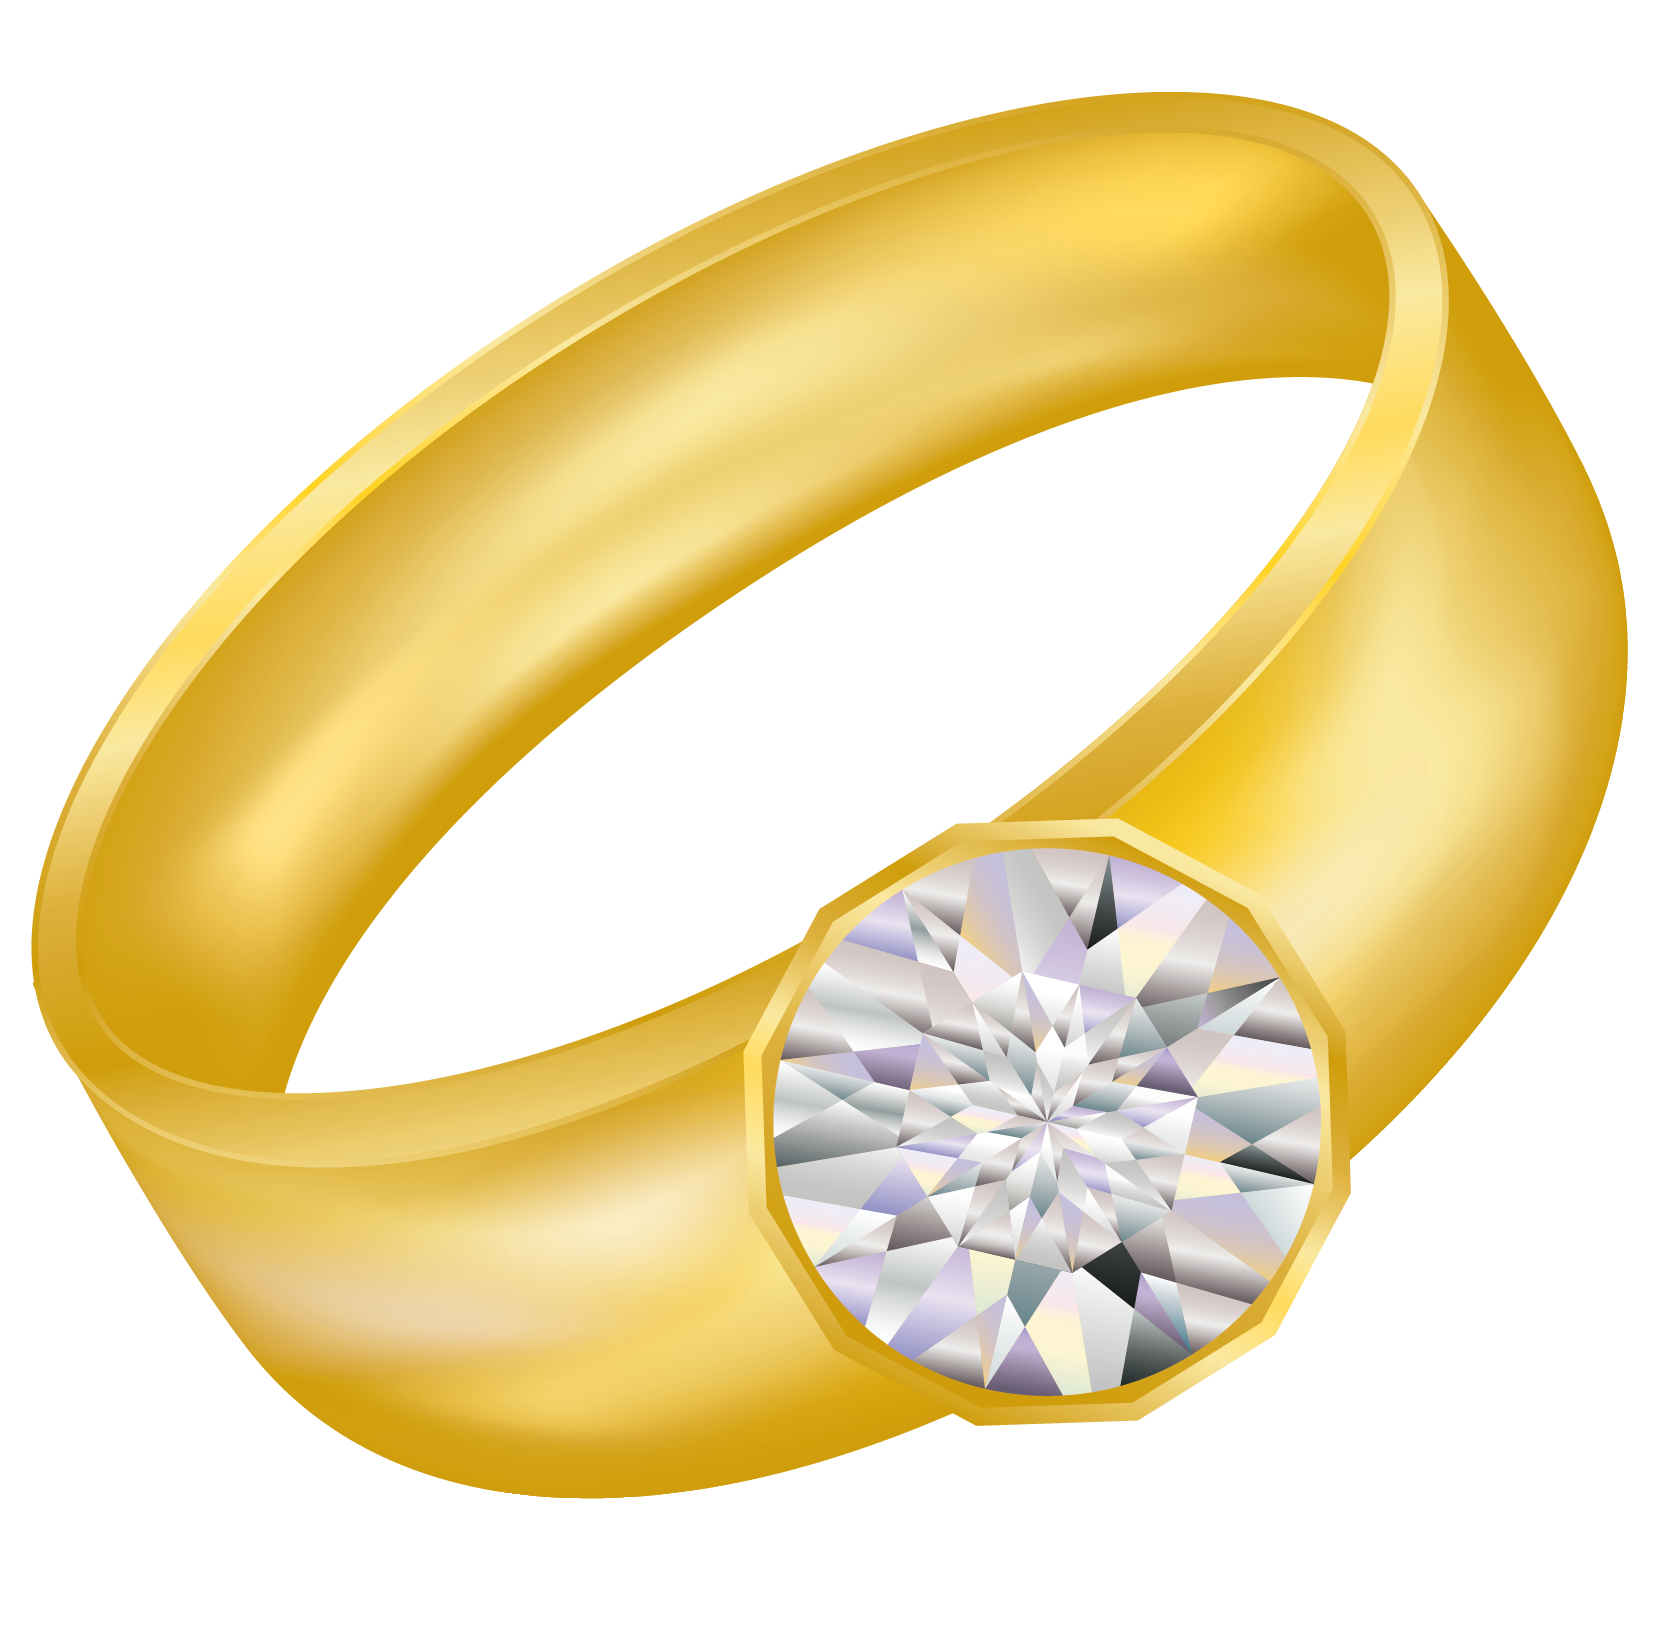 Engagement clipart bachelorette ring. Transparent gold with diamond